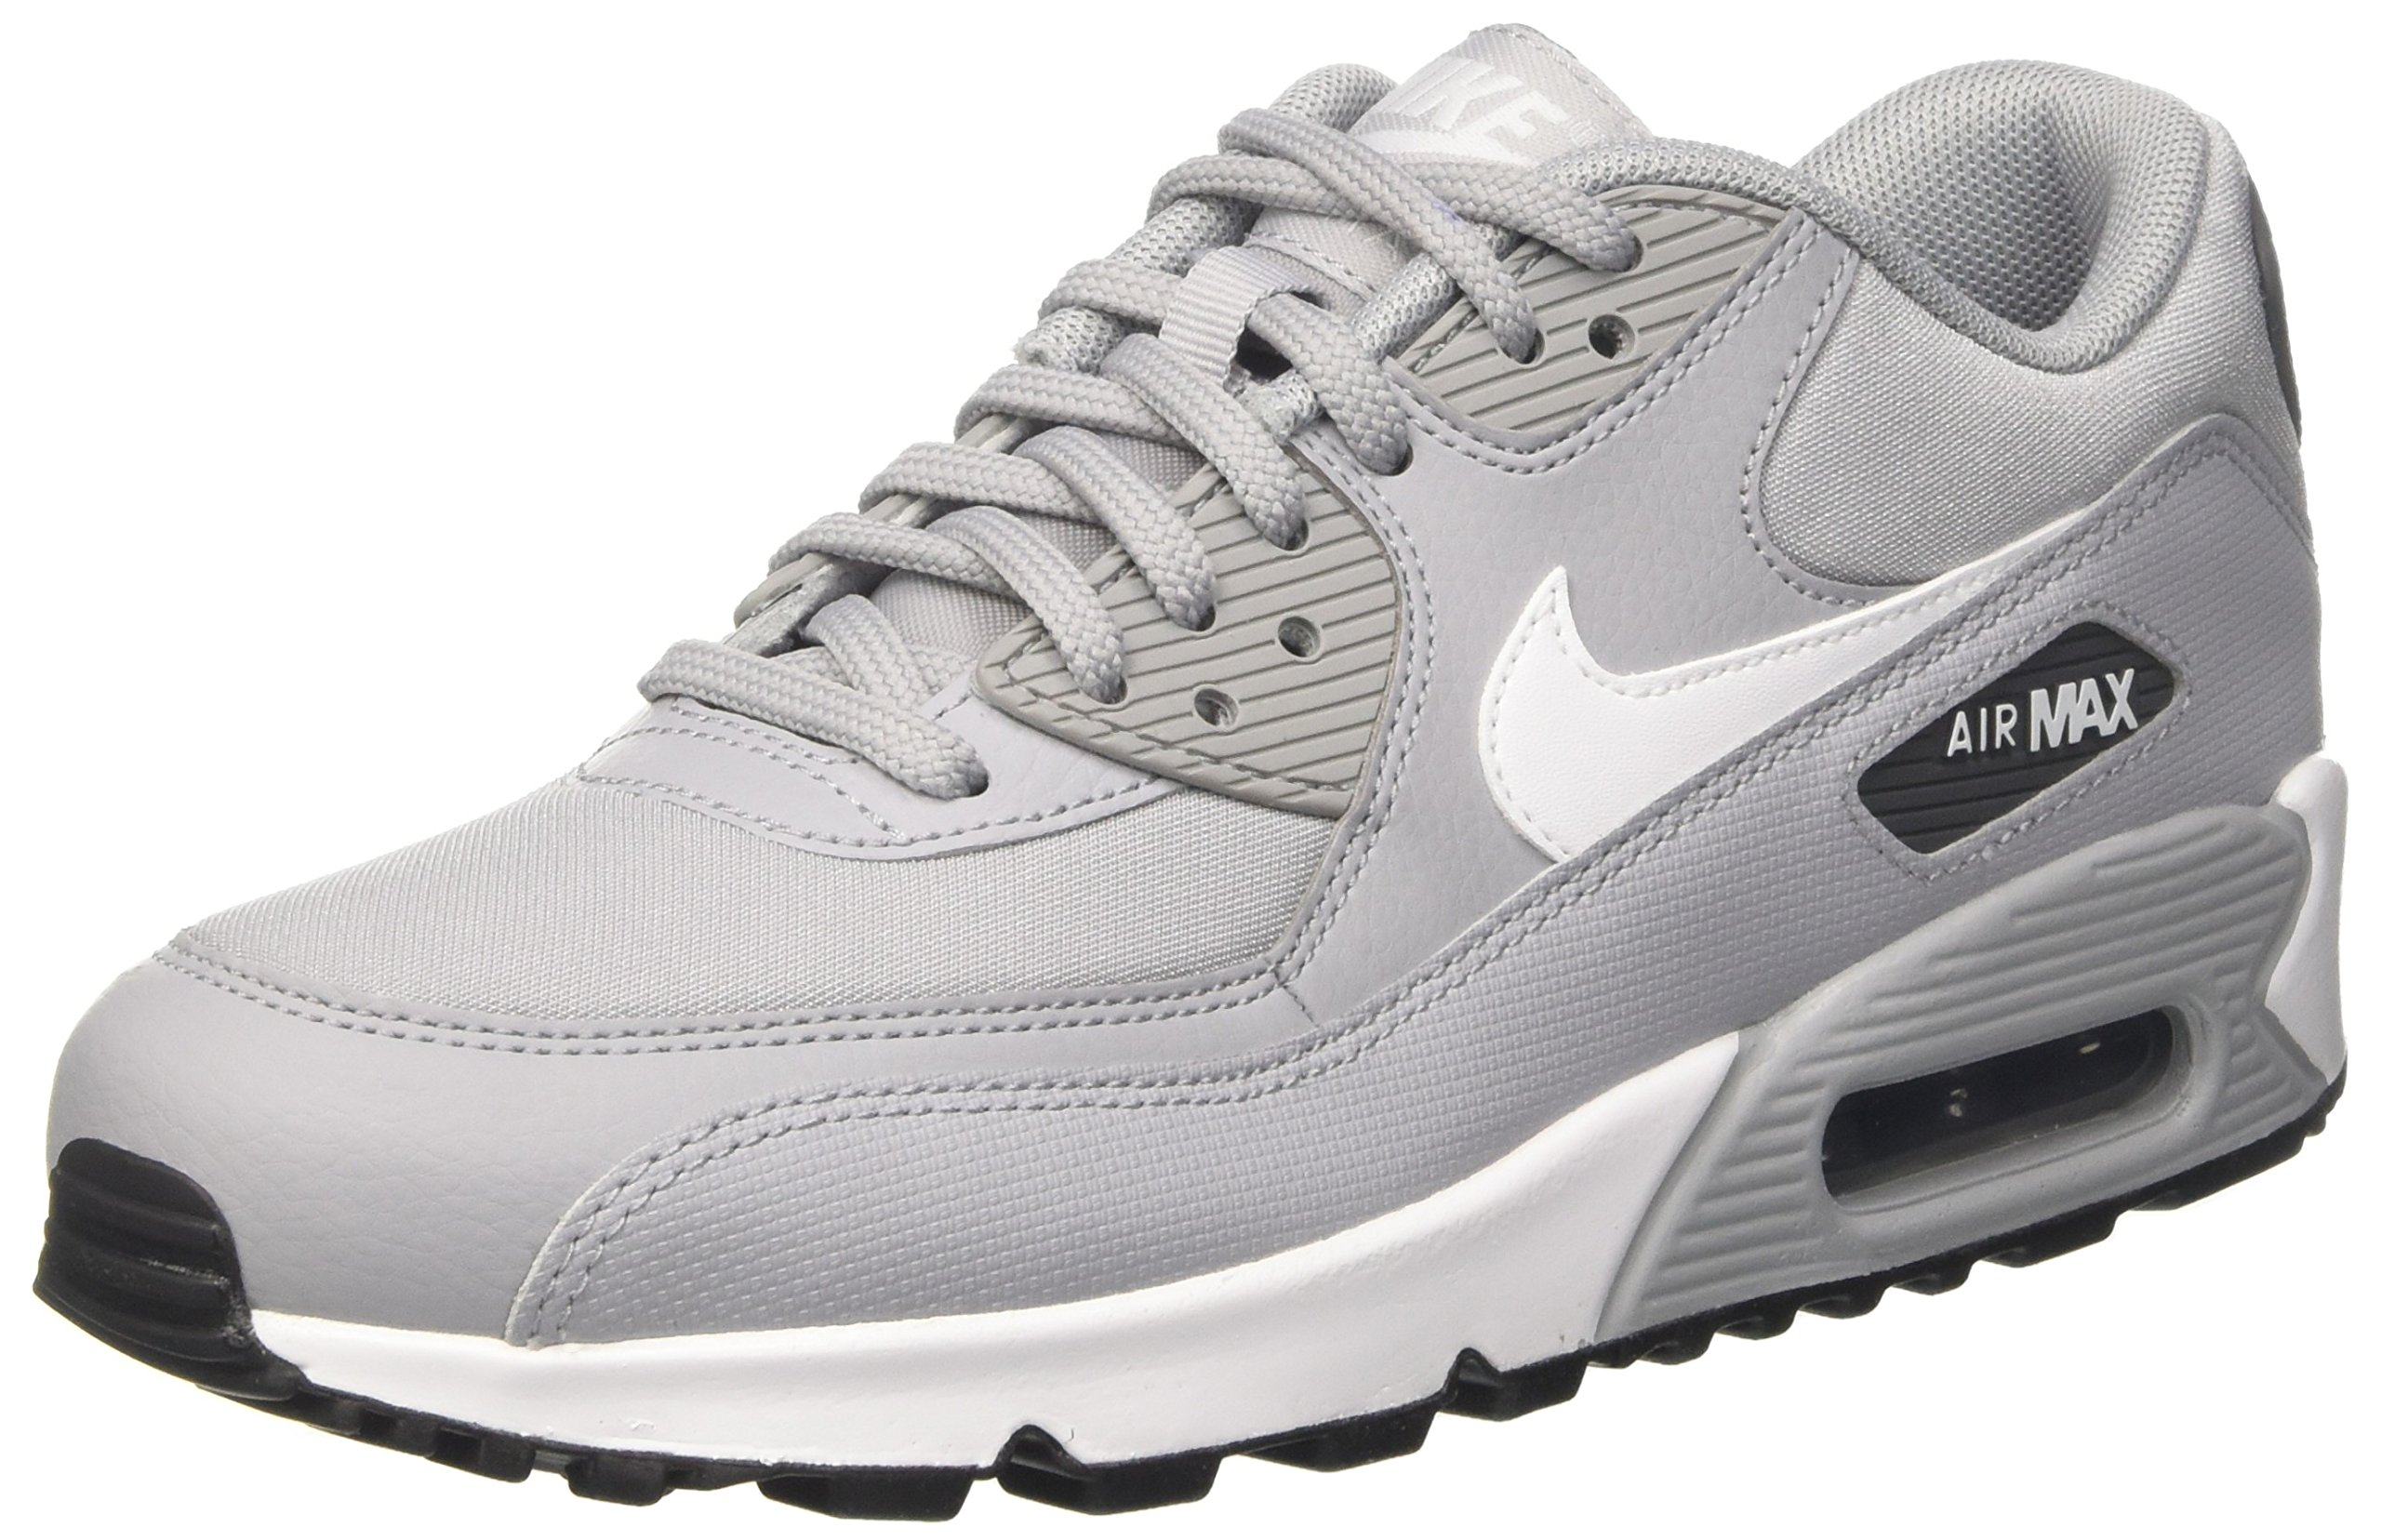 finest selection bdcb3 2069f Galleon - NIKE Air Max 90 Womens Running Shoes (6.5 B(M) US)